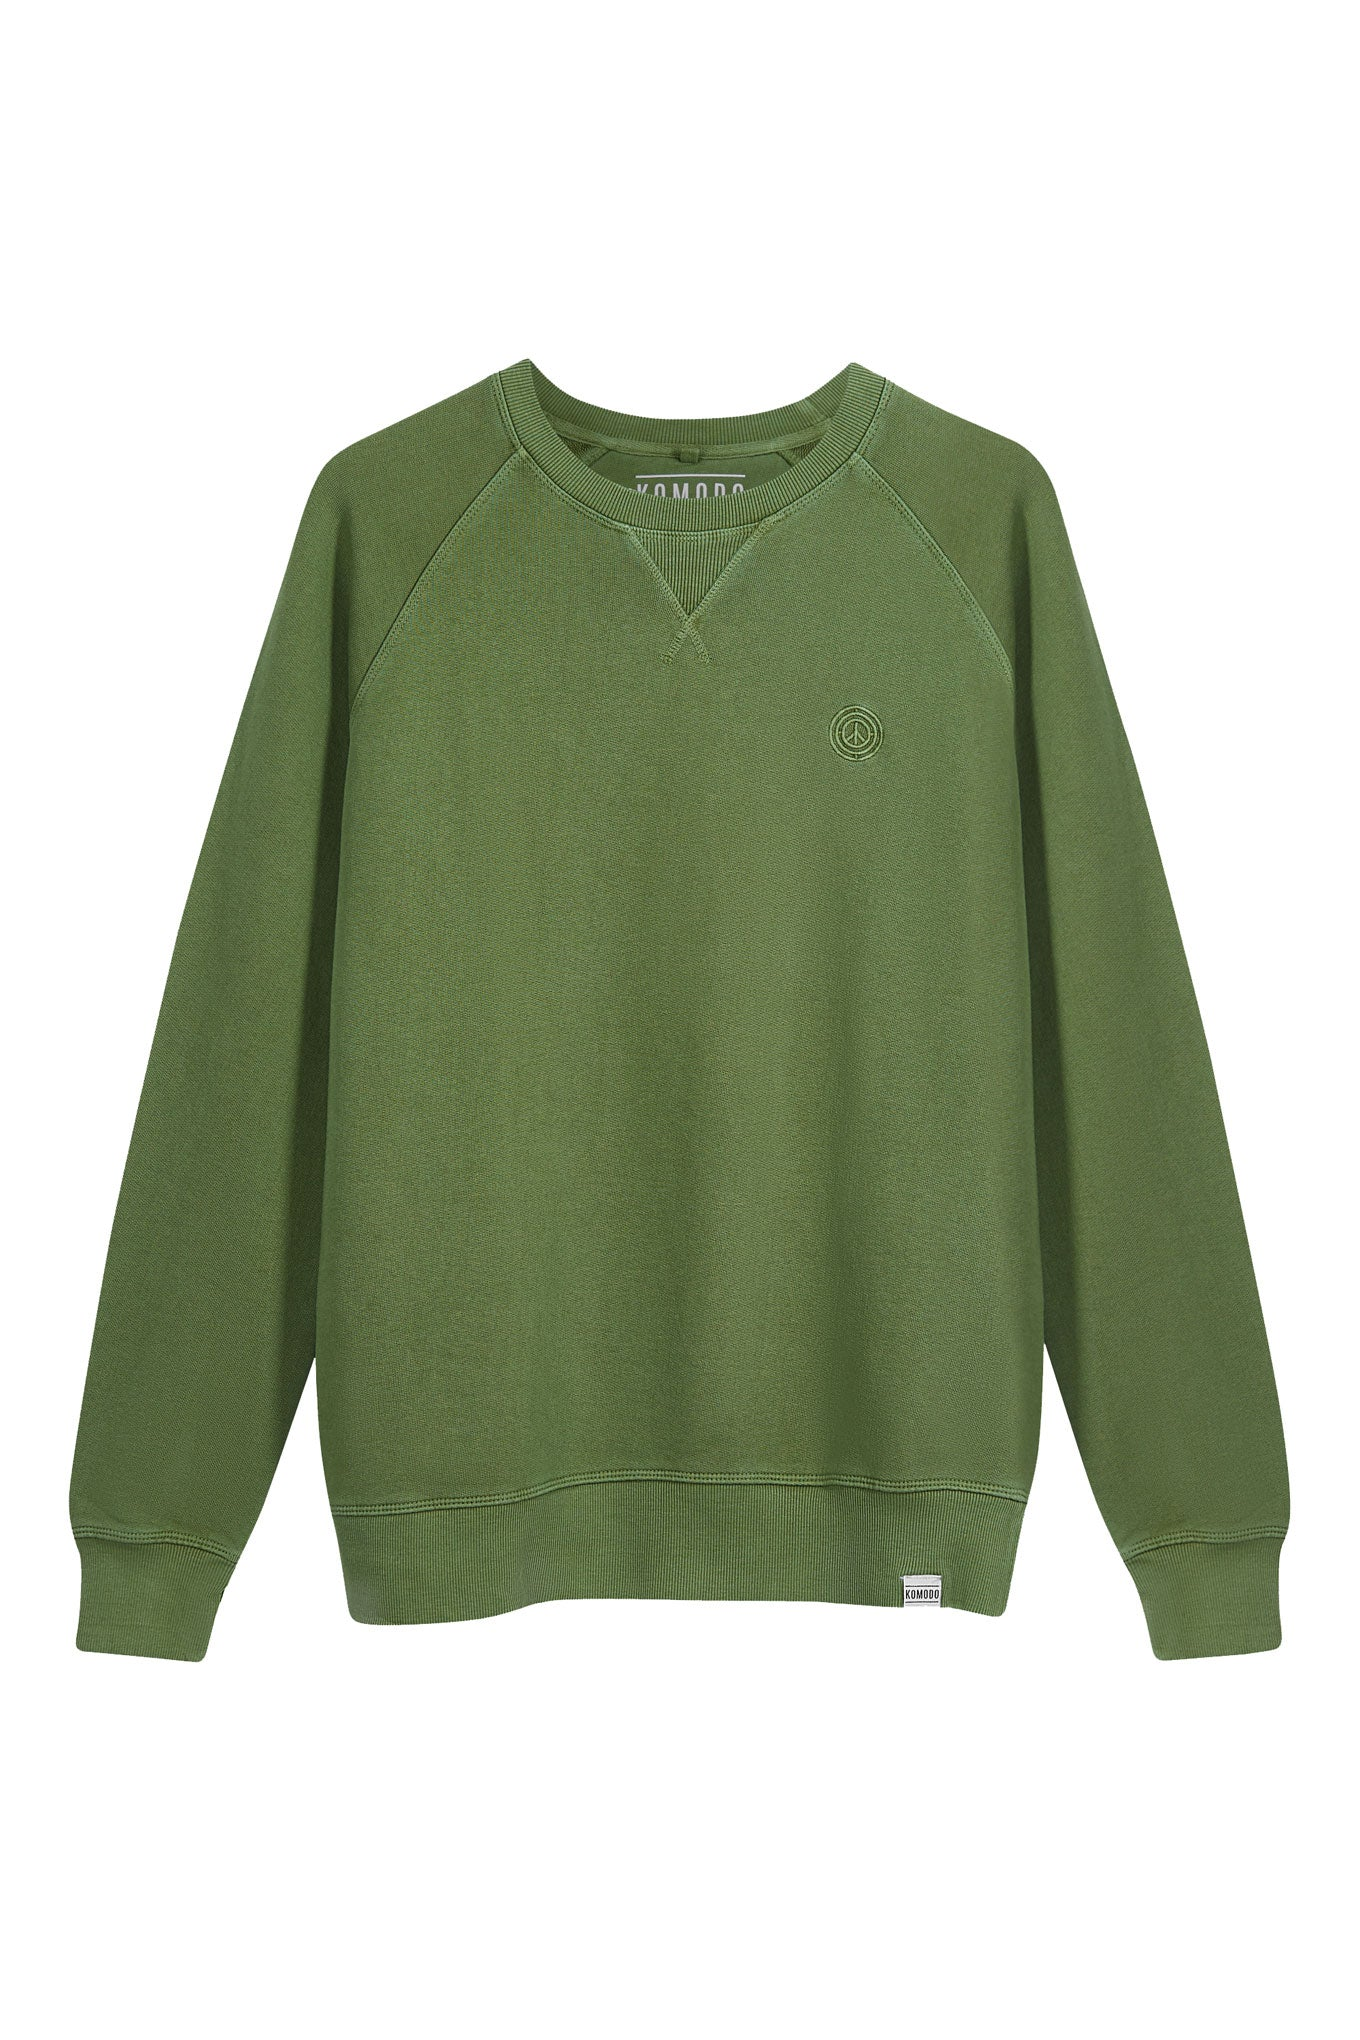 ANTON Mens Organic Cotton Crewneck Olive